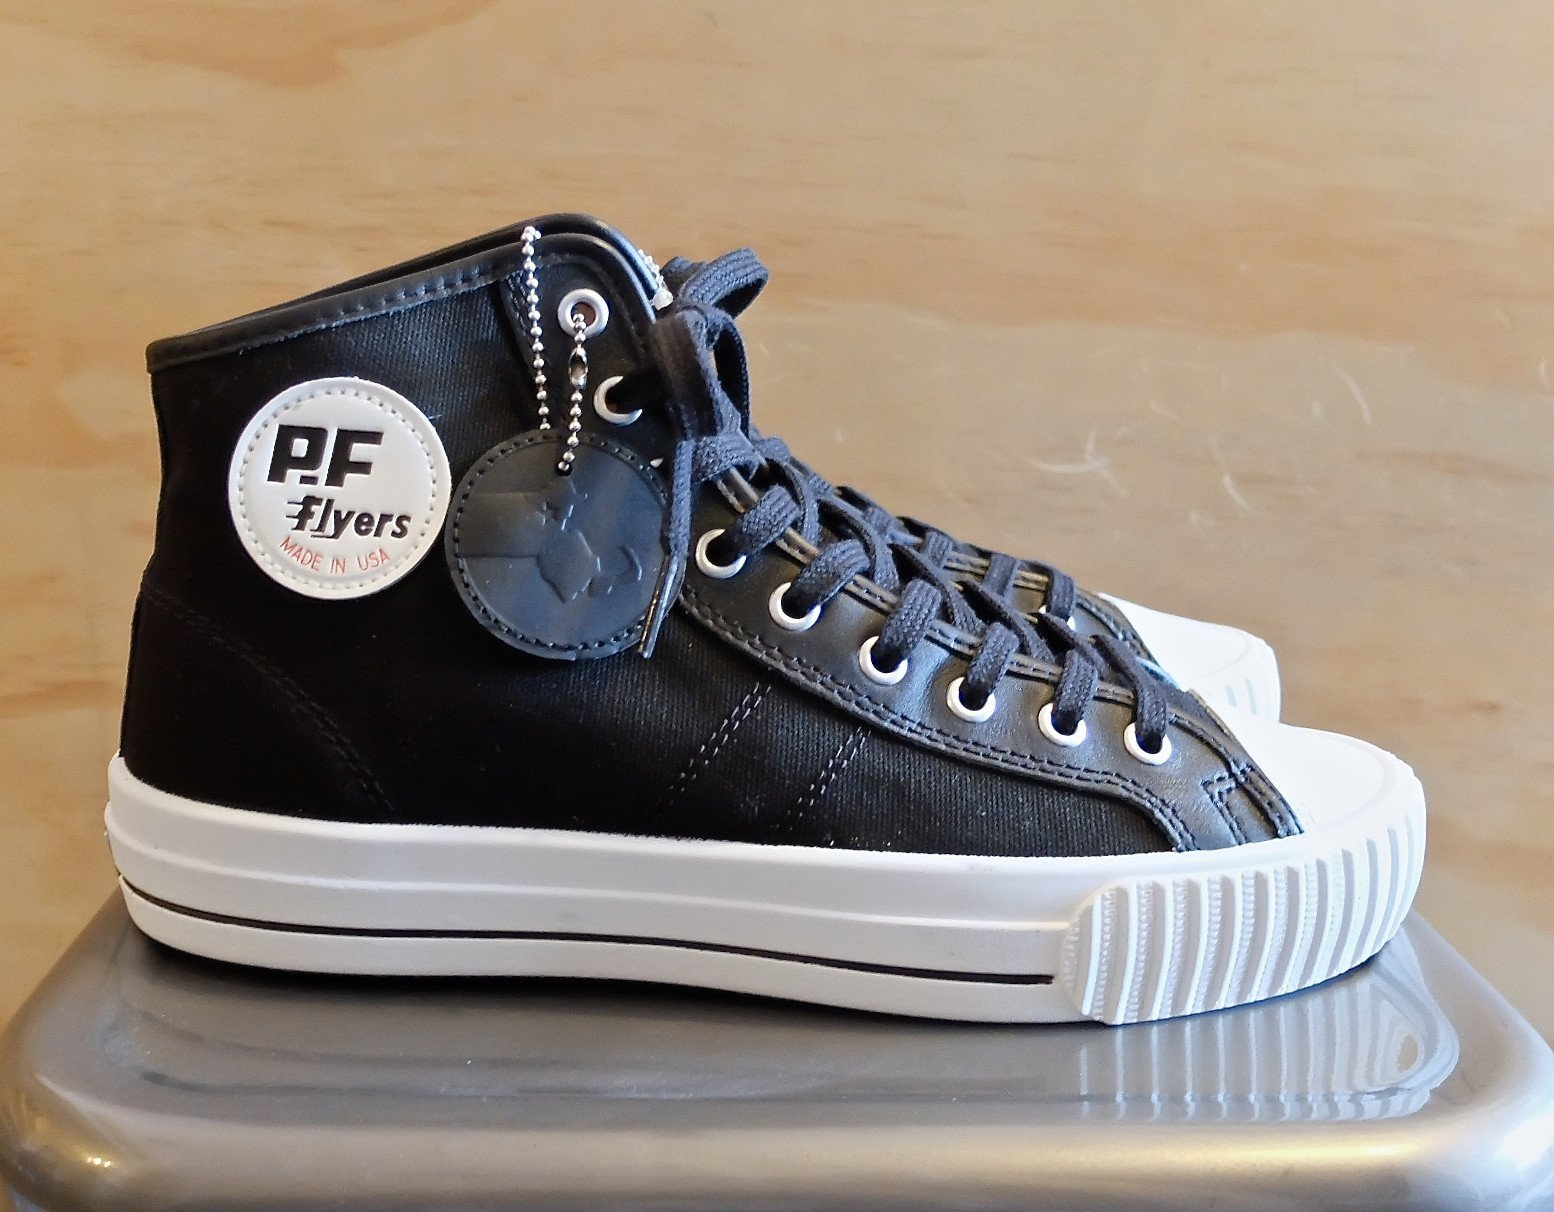 PF FLyers Made In USA Center Hi Movie TV Tech Geeks